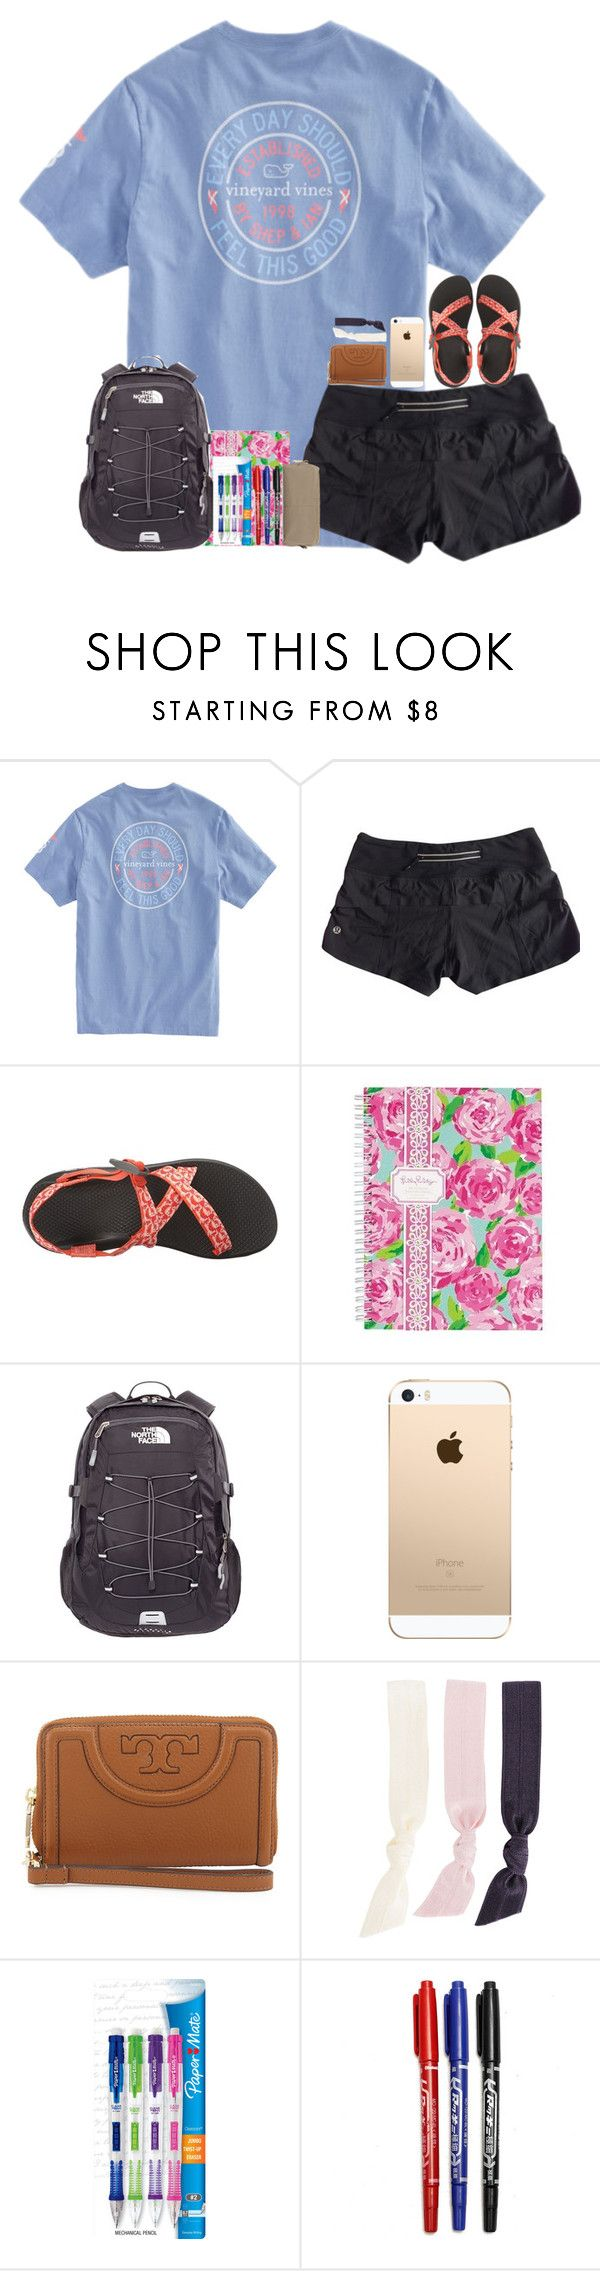 """school supply shopping!"" by hmcdaniel01 ❤ liked on Polyvore featuring lululemon, Chaco, Lilly Pulitzer, The North Face, Tory Burch, Splendid, Paper Mate, Neiman Marcus and bestiesbacktoschool"